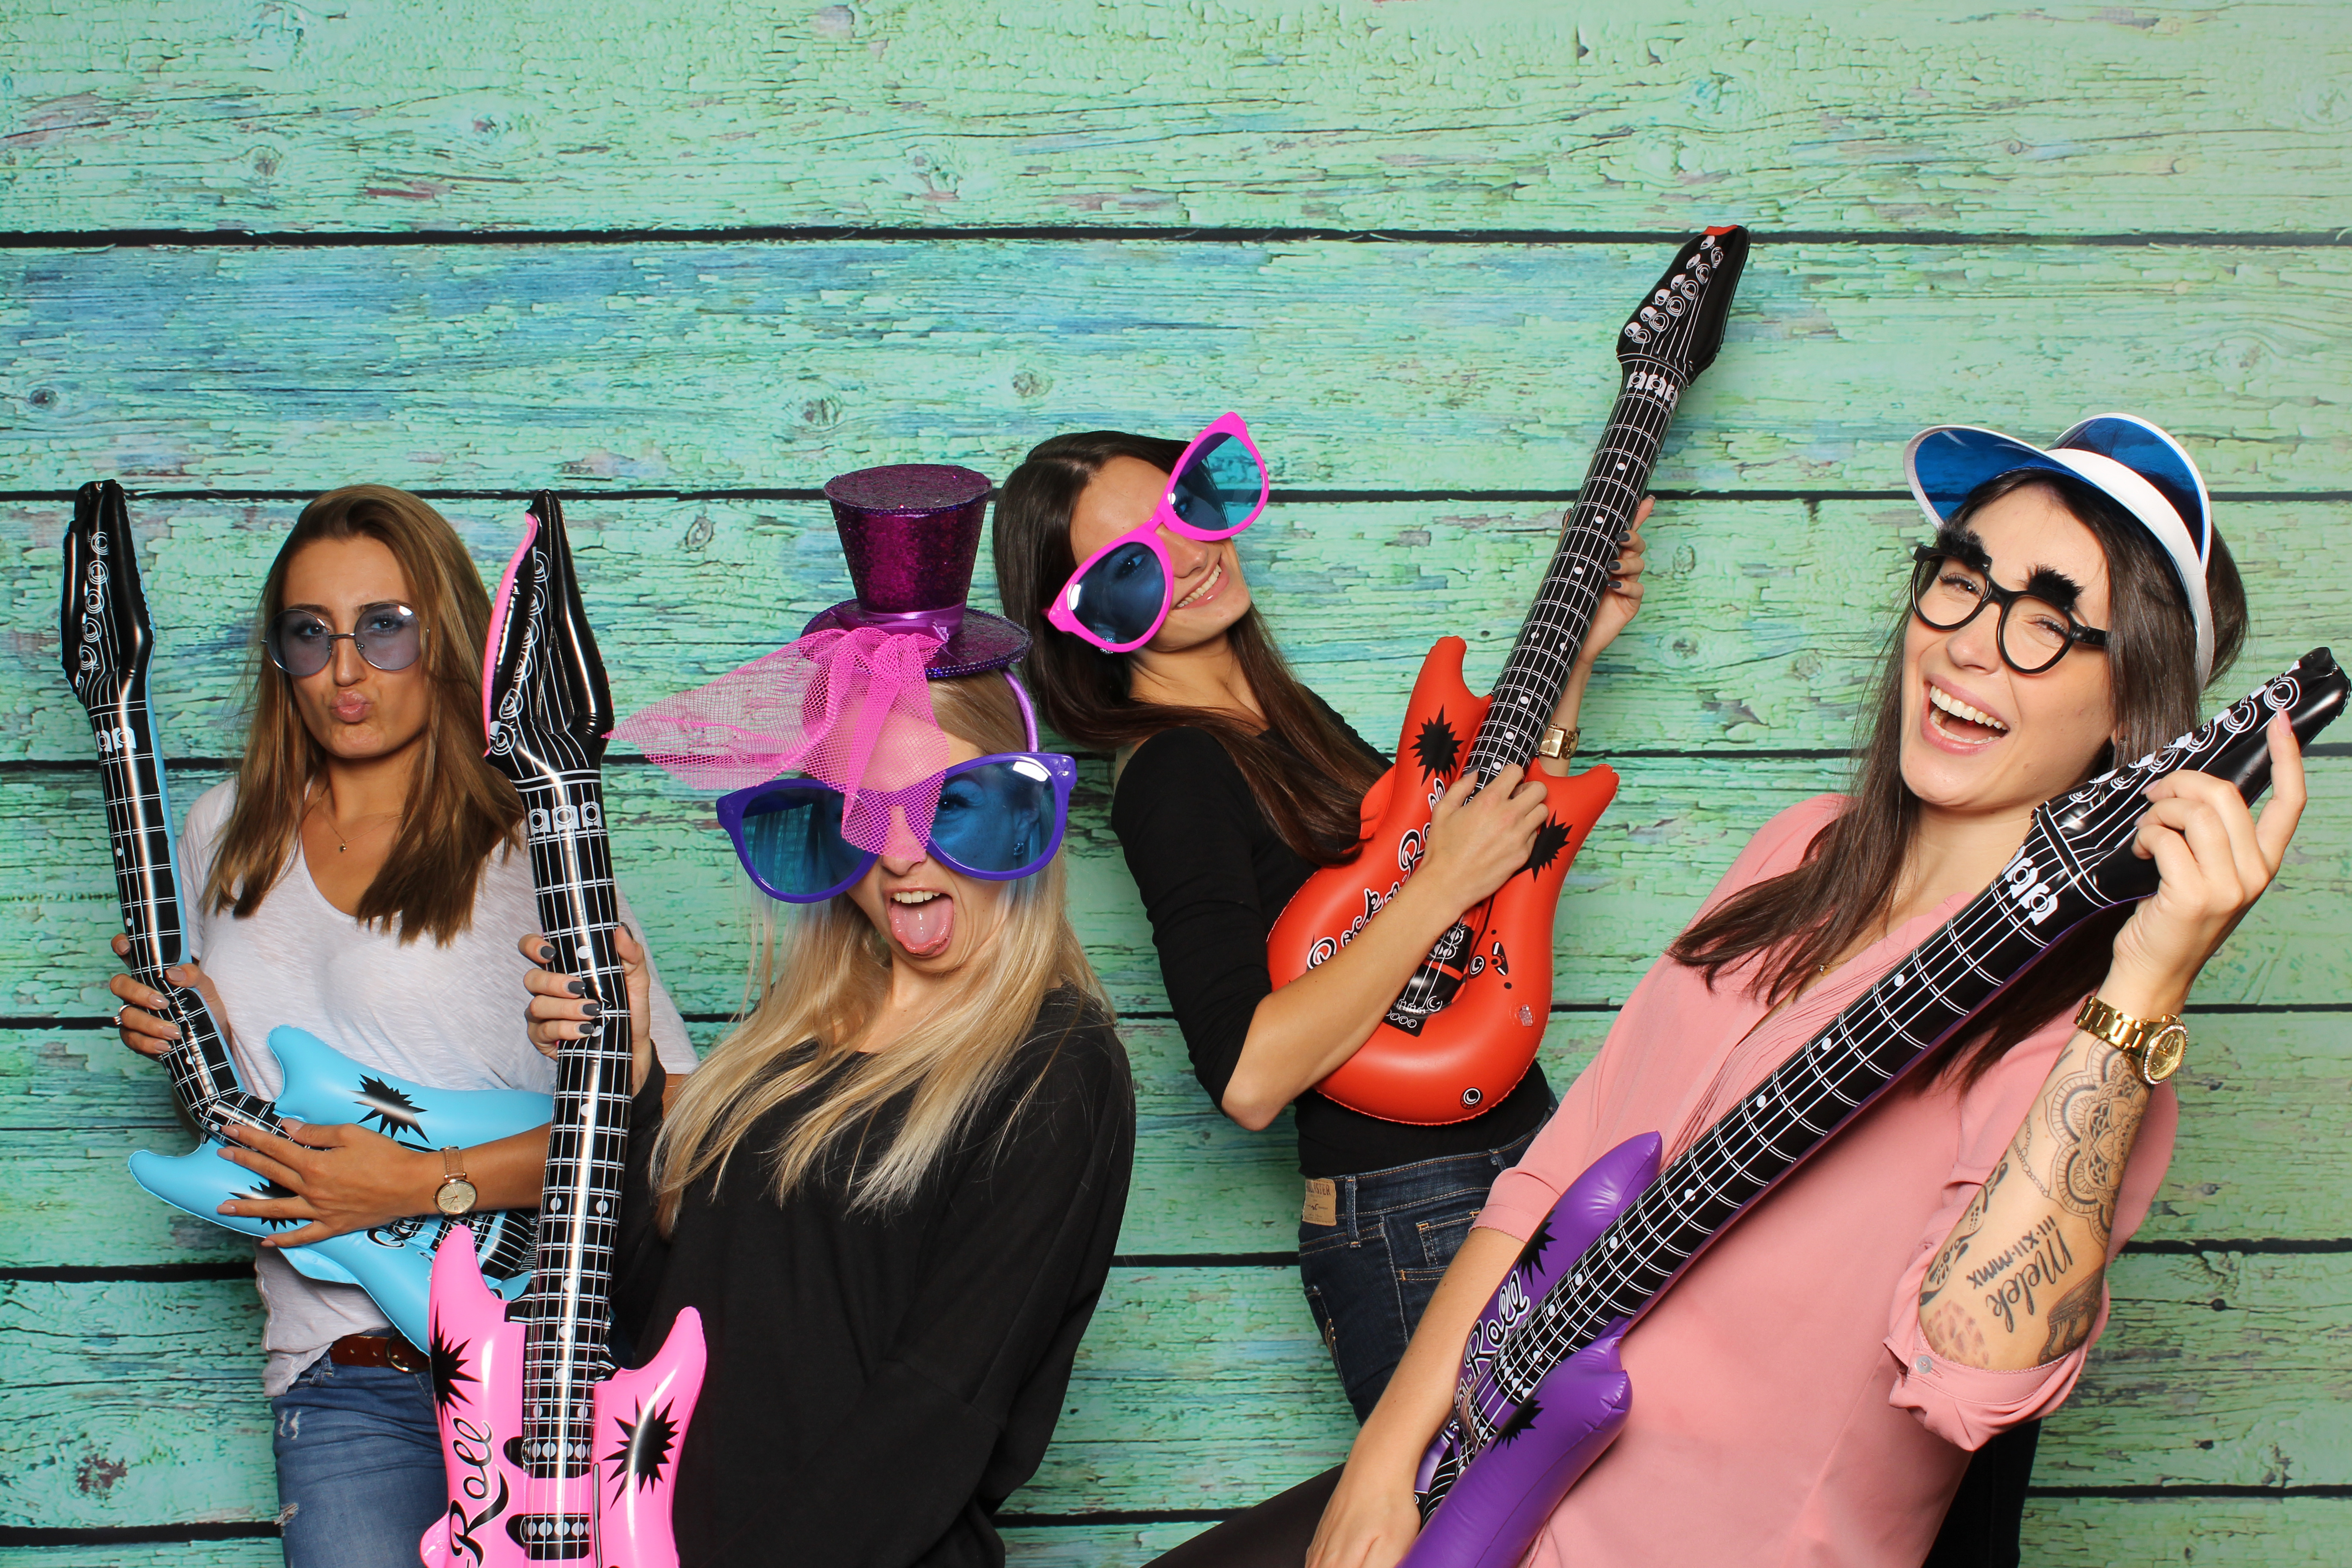 Party mit Fotobox – Damen posen mit Gitarren vor Photobooth